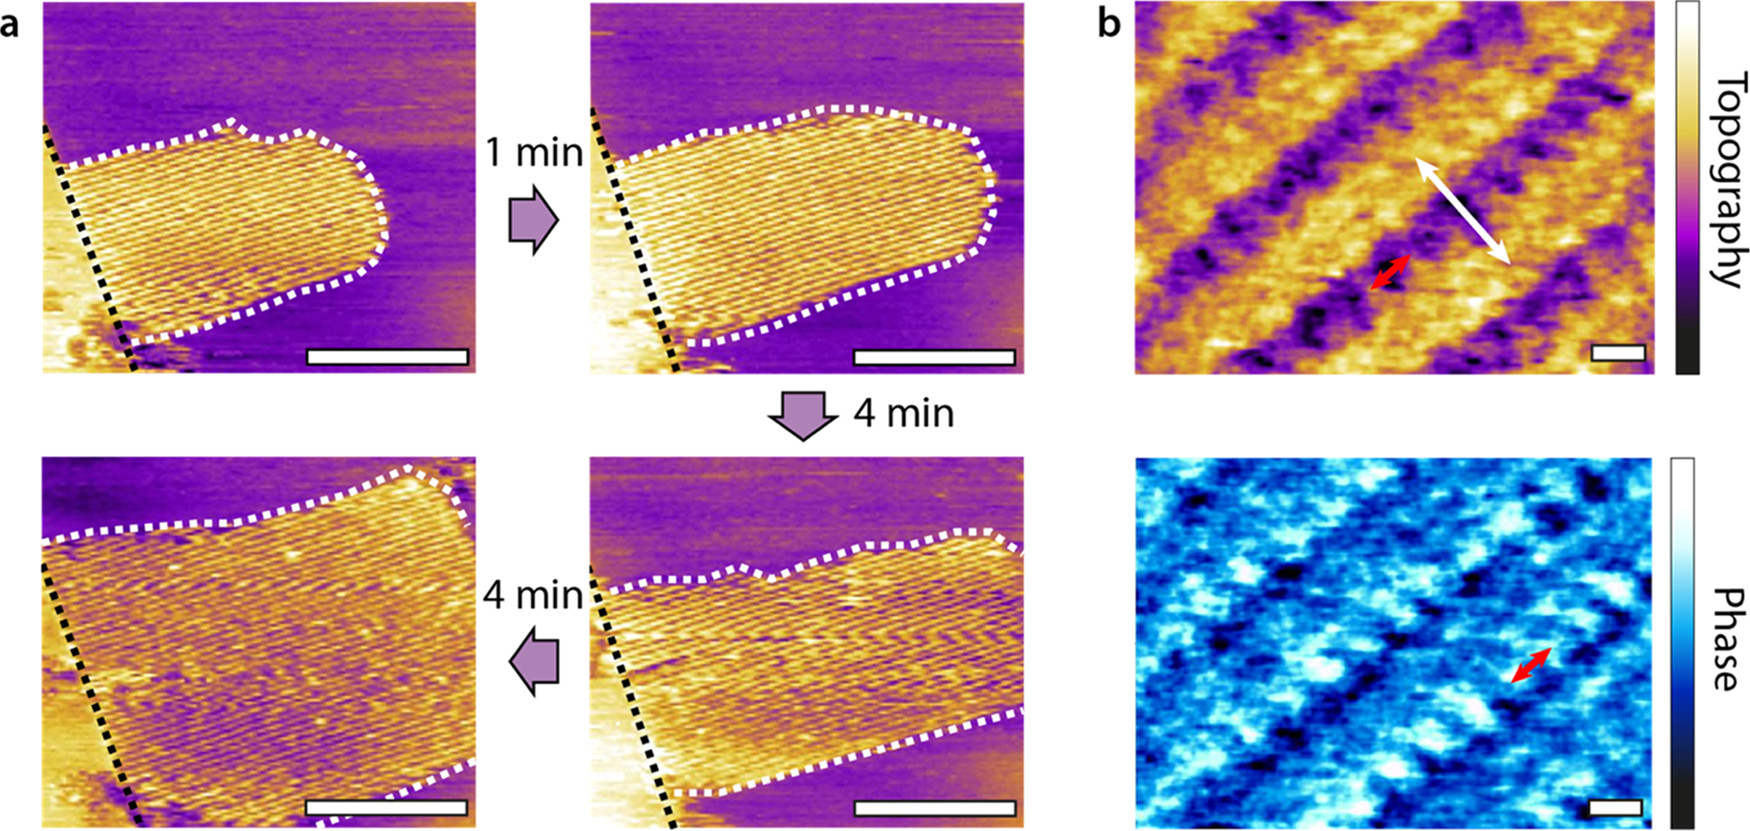 "Figure 1 from ""In Situ Molecular-Level Observation of Methanol Catalysis at the Water–Graphite Interface"" by W. Foster et al.: High-resolution amplitude modulation AFM imaging of HOPG immersed in initially ultrapure water. (a) A solid-like patch formed by the self-assembly of molecules (dashed white outline) nucleates from an atomic step at the HOPG surface (dashed black line). The molecular self-assembly is observed here in situ as it progressively grows across the HOPG surface over a period of 9 min, with the patch edges moving away from the step. Rowlike structures with a periodicity of 4.30 ± 0.28 nm as visible within the patch. (b) Sub-nanometer imaging of other structures reveals detailed features (0.79 ± 0.08 nm periodicity, red arrows) perpendicular to the main rows (periodicity 2.45 ± 0.08 nm, white arrow). The exact molecular arrangement is not known, but strongly reminiscent of the alternated water–methanol nanoribbons recently reported by our group.(22) The white scale bars are 100 nm in (a) and 1 nm in (b). The purple color scale bar represents a topographic variation of 20 Å in (a) and 1 Å nm in (b). The blue scale bar represents a phase variation of 20° in (a) and 10° in (b). In (a) the time lapse between the first and second frames is 1 min and then 4 min elapses between the subsequent frames. NanoWorld Arrow-UHFAuD AFM probes were used."